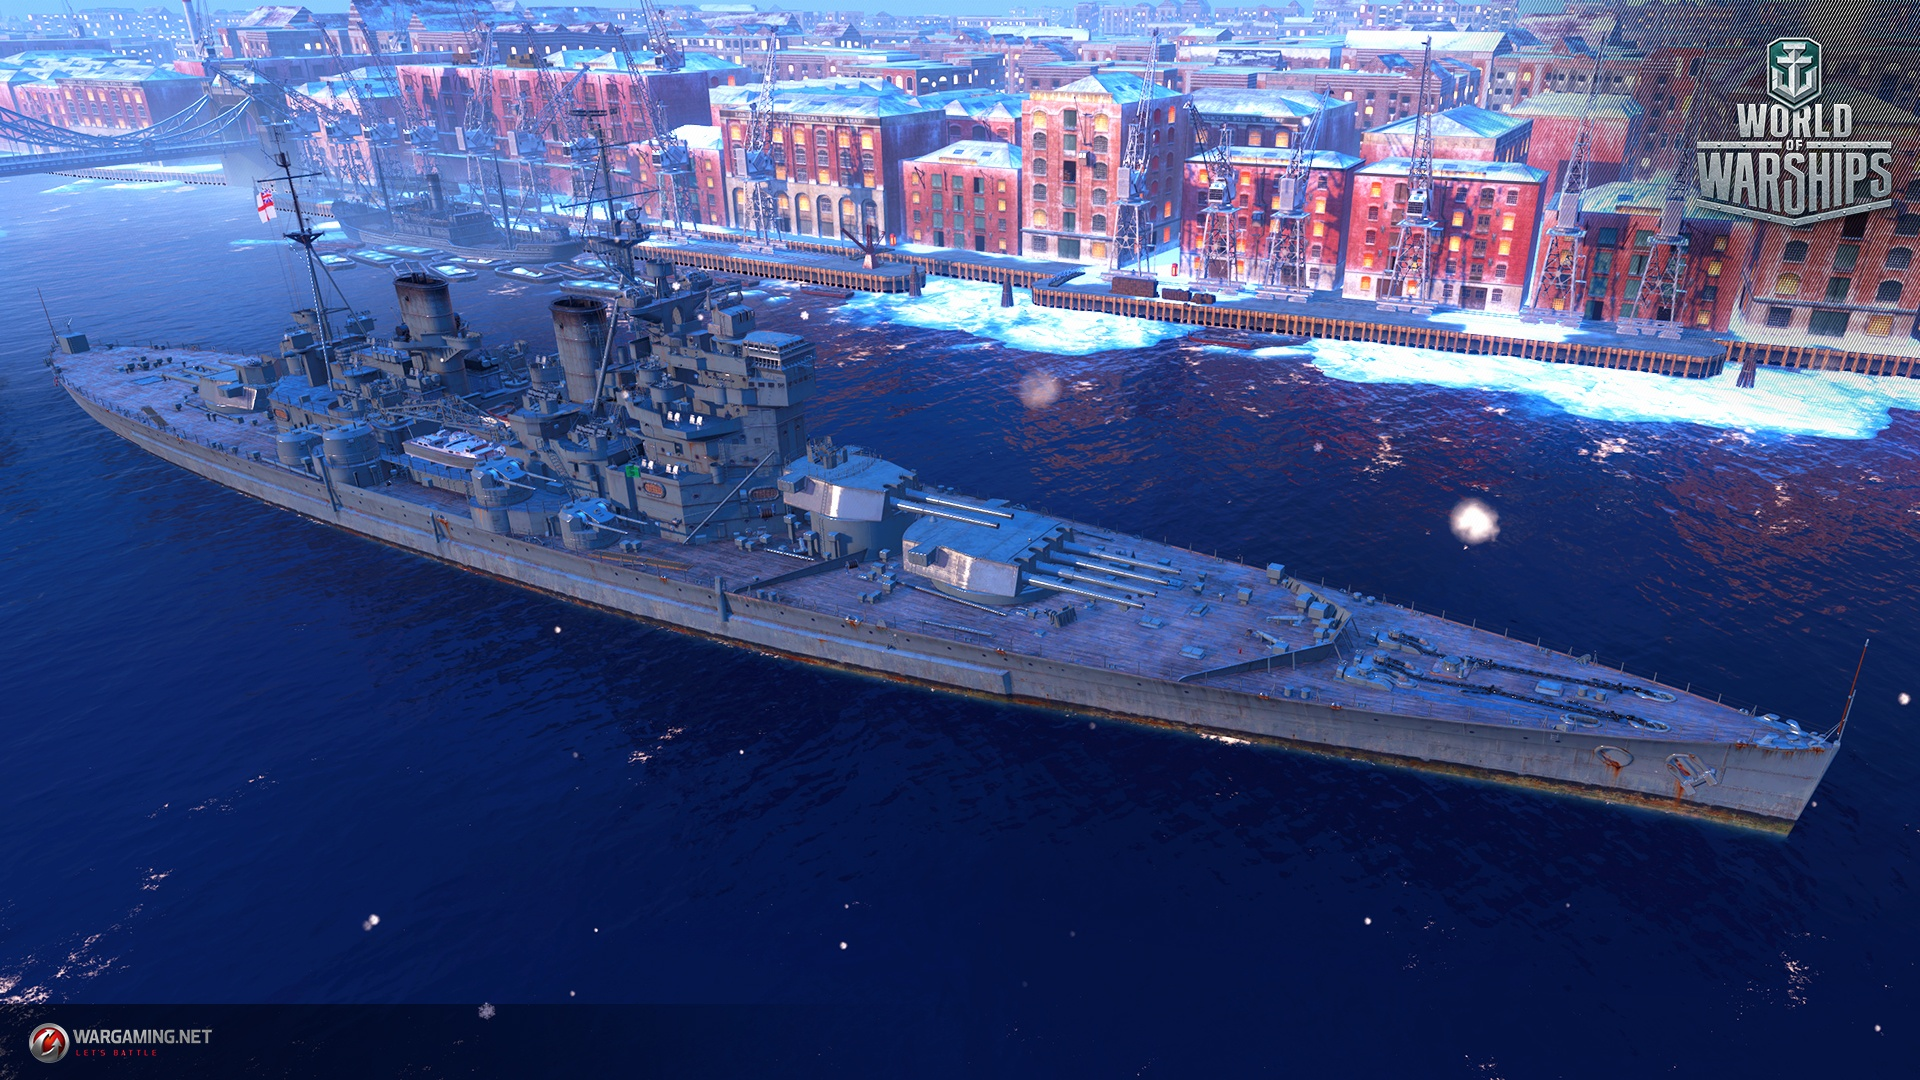 3d War Wallpaper World Of Warships British Battleships Nelson King